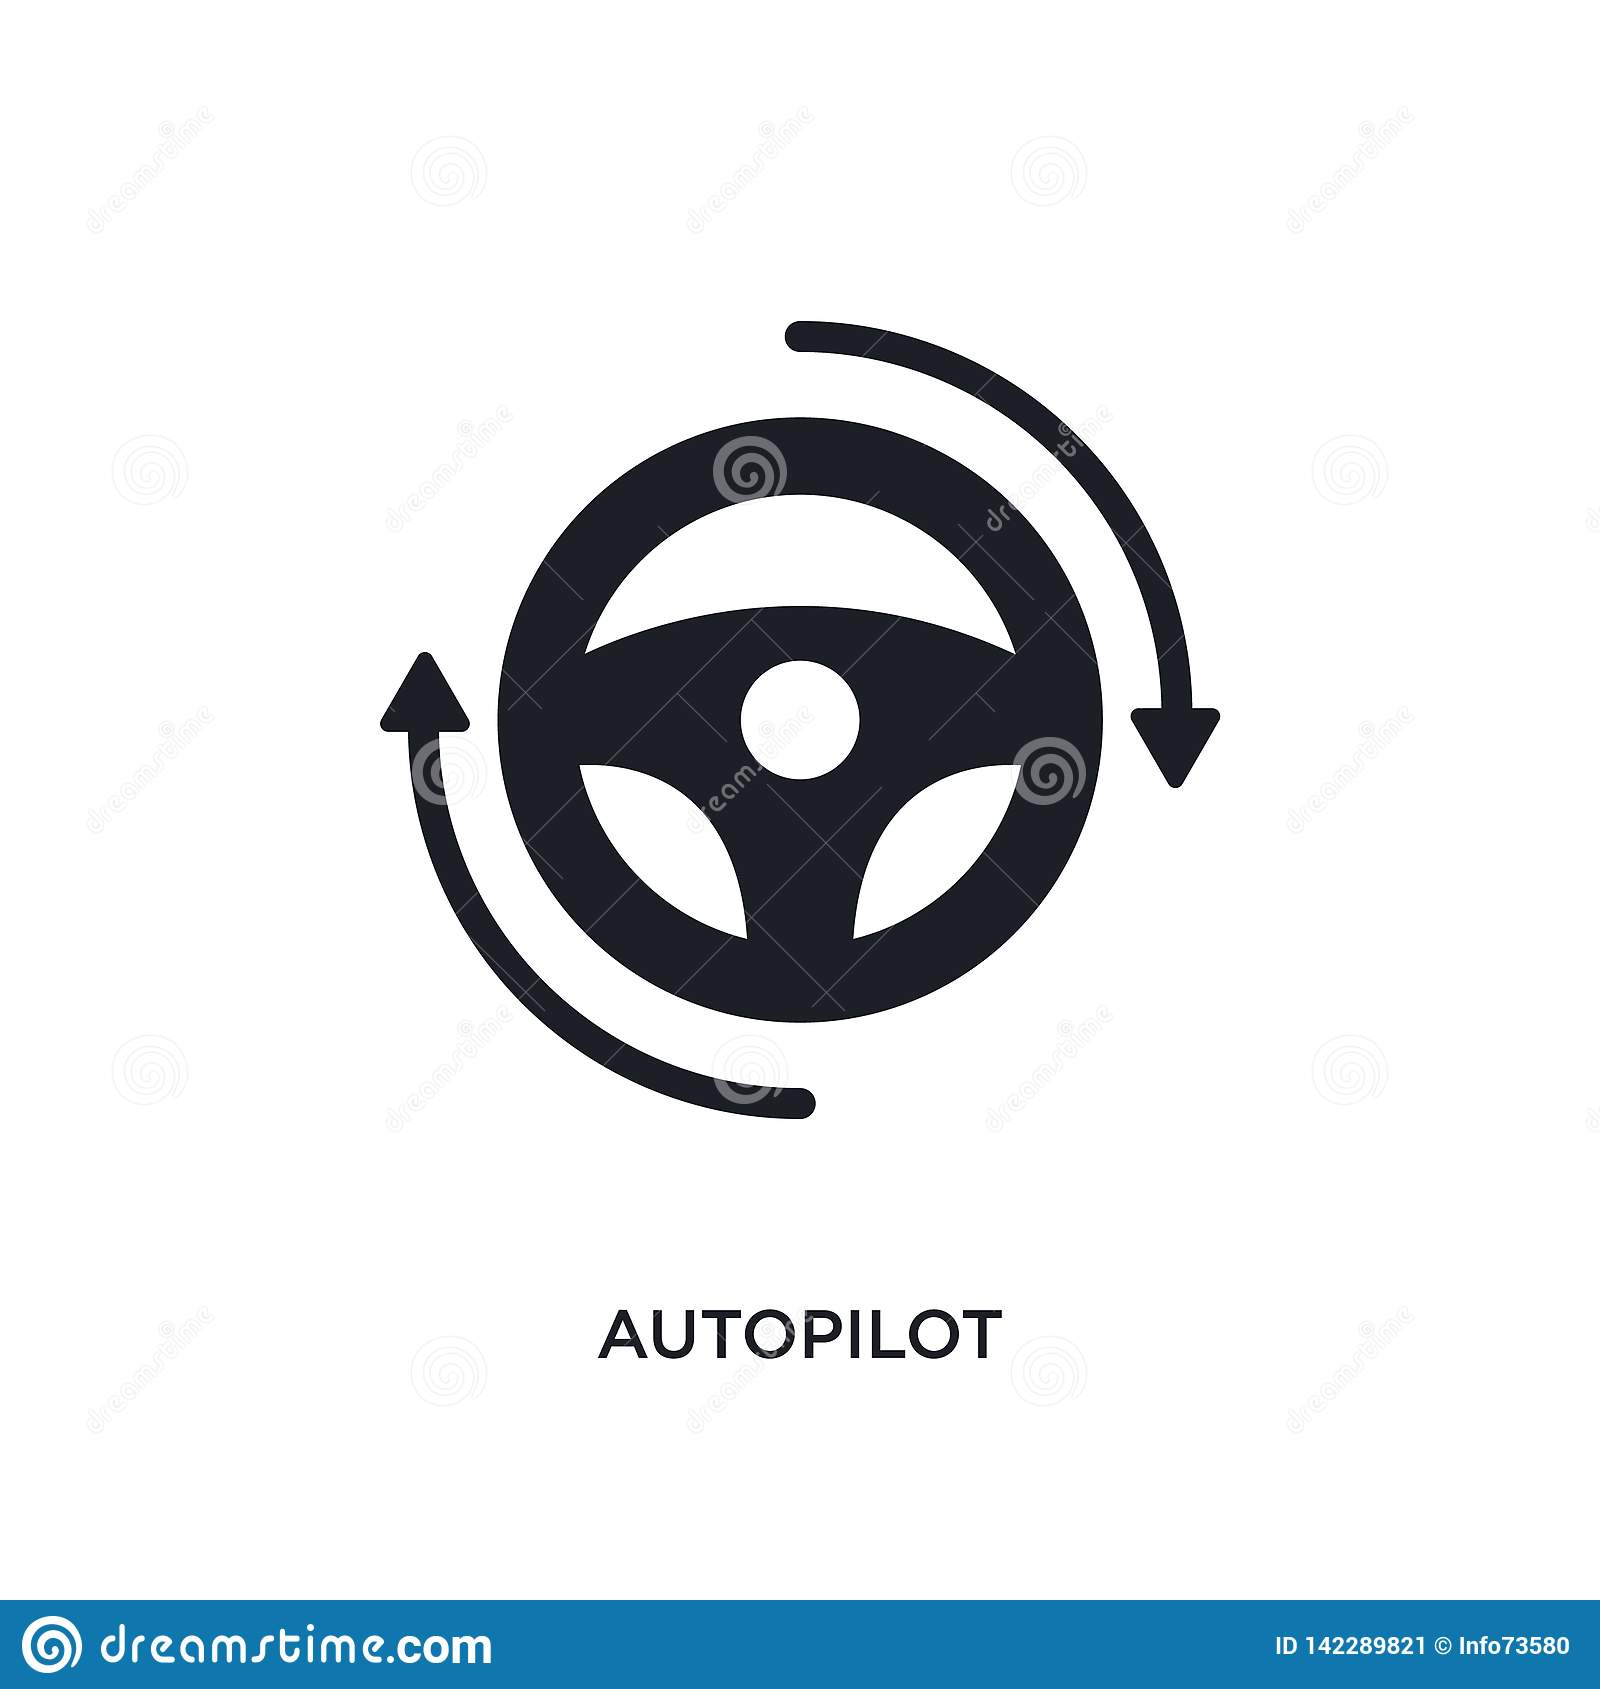 autopilot isolated icon. simple element illustration from general-1 concept icons. autopilot editable logo sign symbol design on